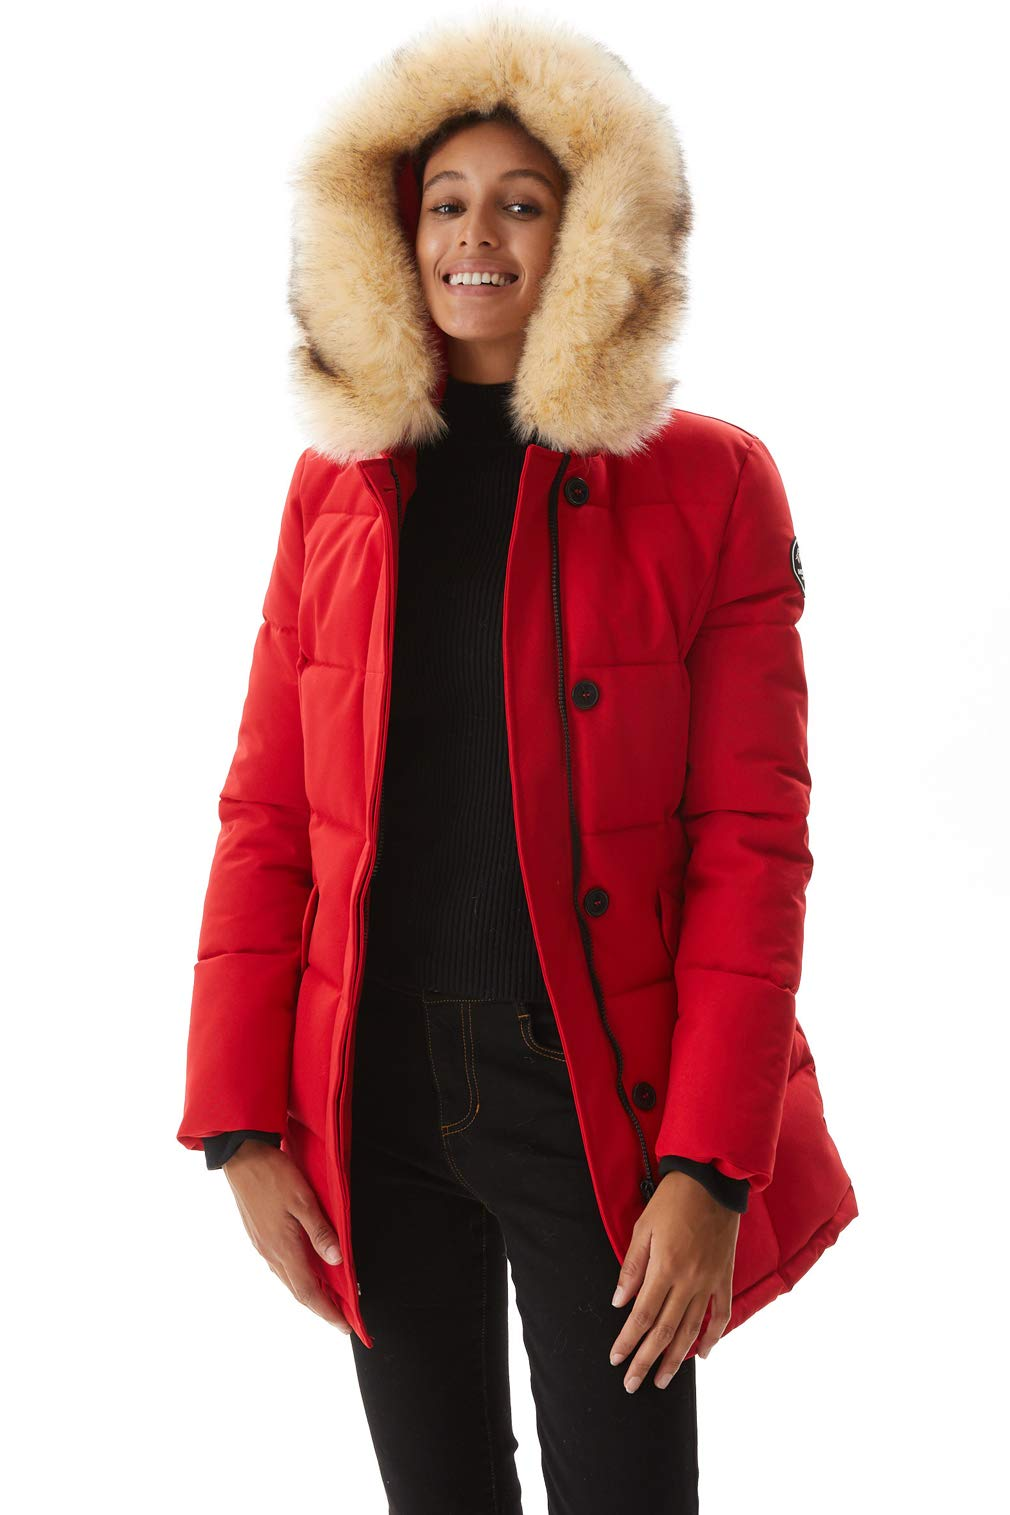 Molemsx Heavy Winter Coat for Women, Classic Club Padded Jacket Womens Warm Puffer Coat Parka Jacket with Fur Trimmed Hood Red Medium by Molemsx